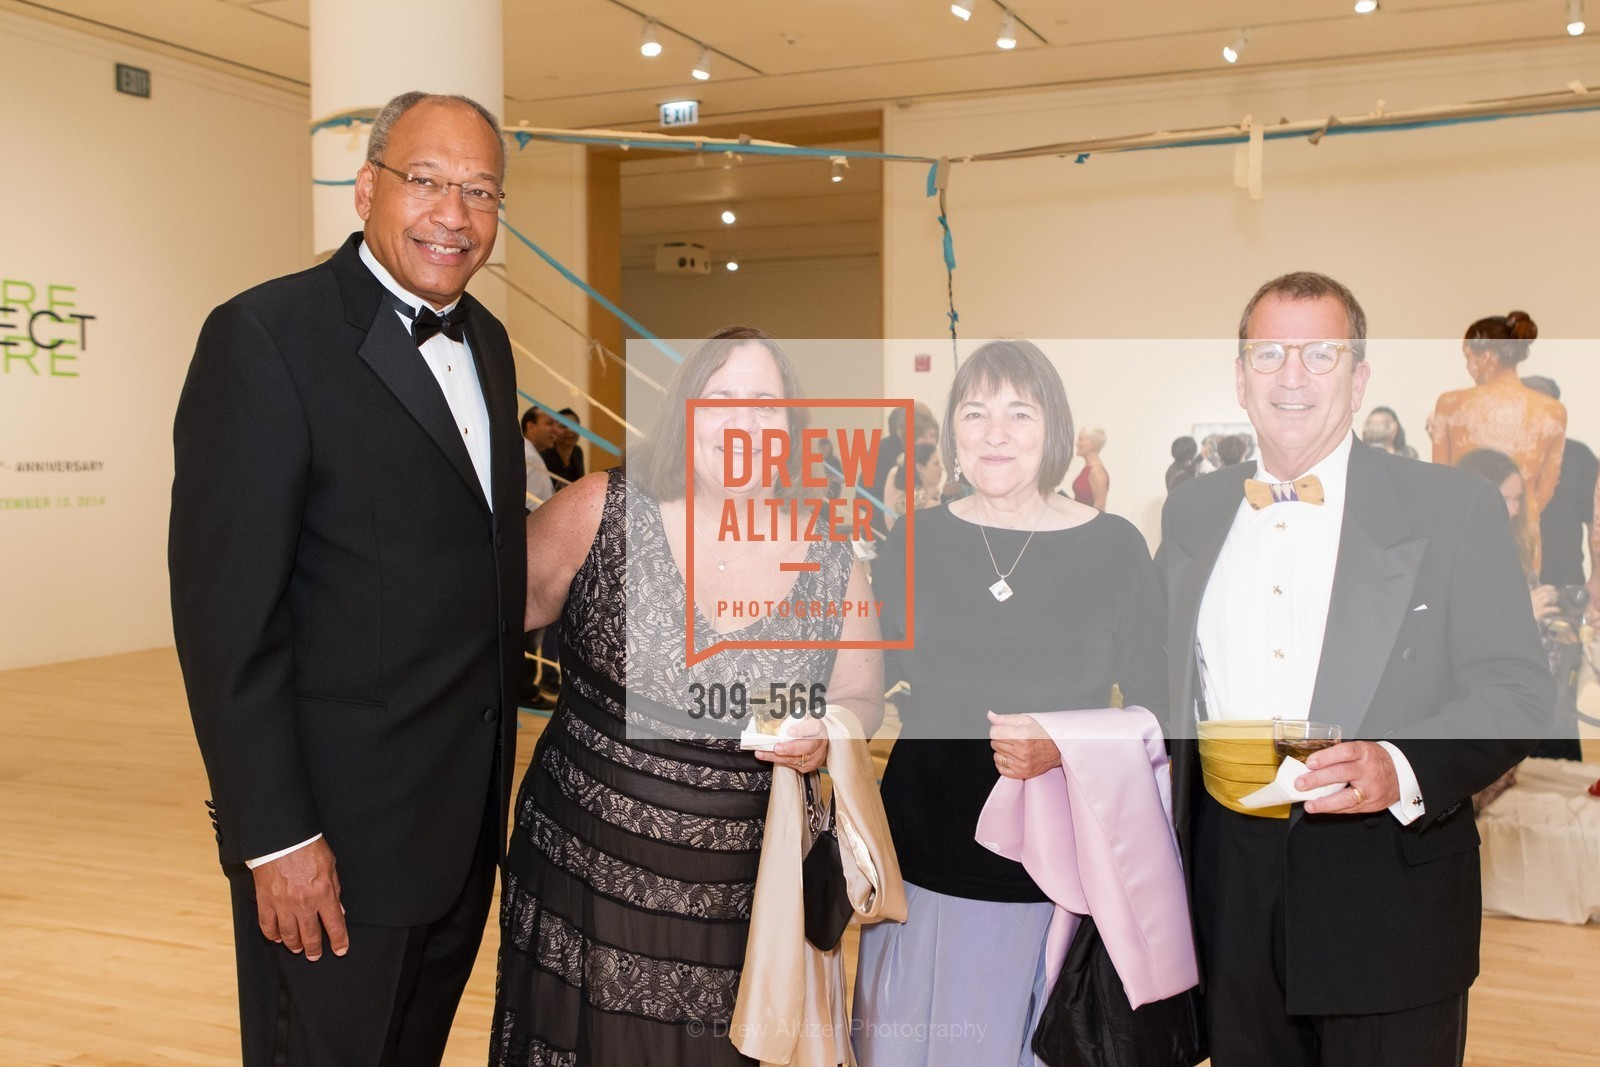 Roger Bowie, Peggy Dalton, Mary Alice Bowie, Rush Dalton, SAN JOSE MUSEUM OF ART'S Spectrum Gala - 45th Anniversary, US, September 13th, 2014,Drew Altizer, Drew Altizer Photography, full-service agency, private events, San Francisco photographer, photographer california